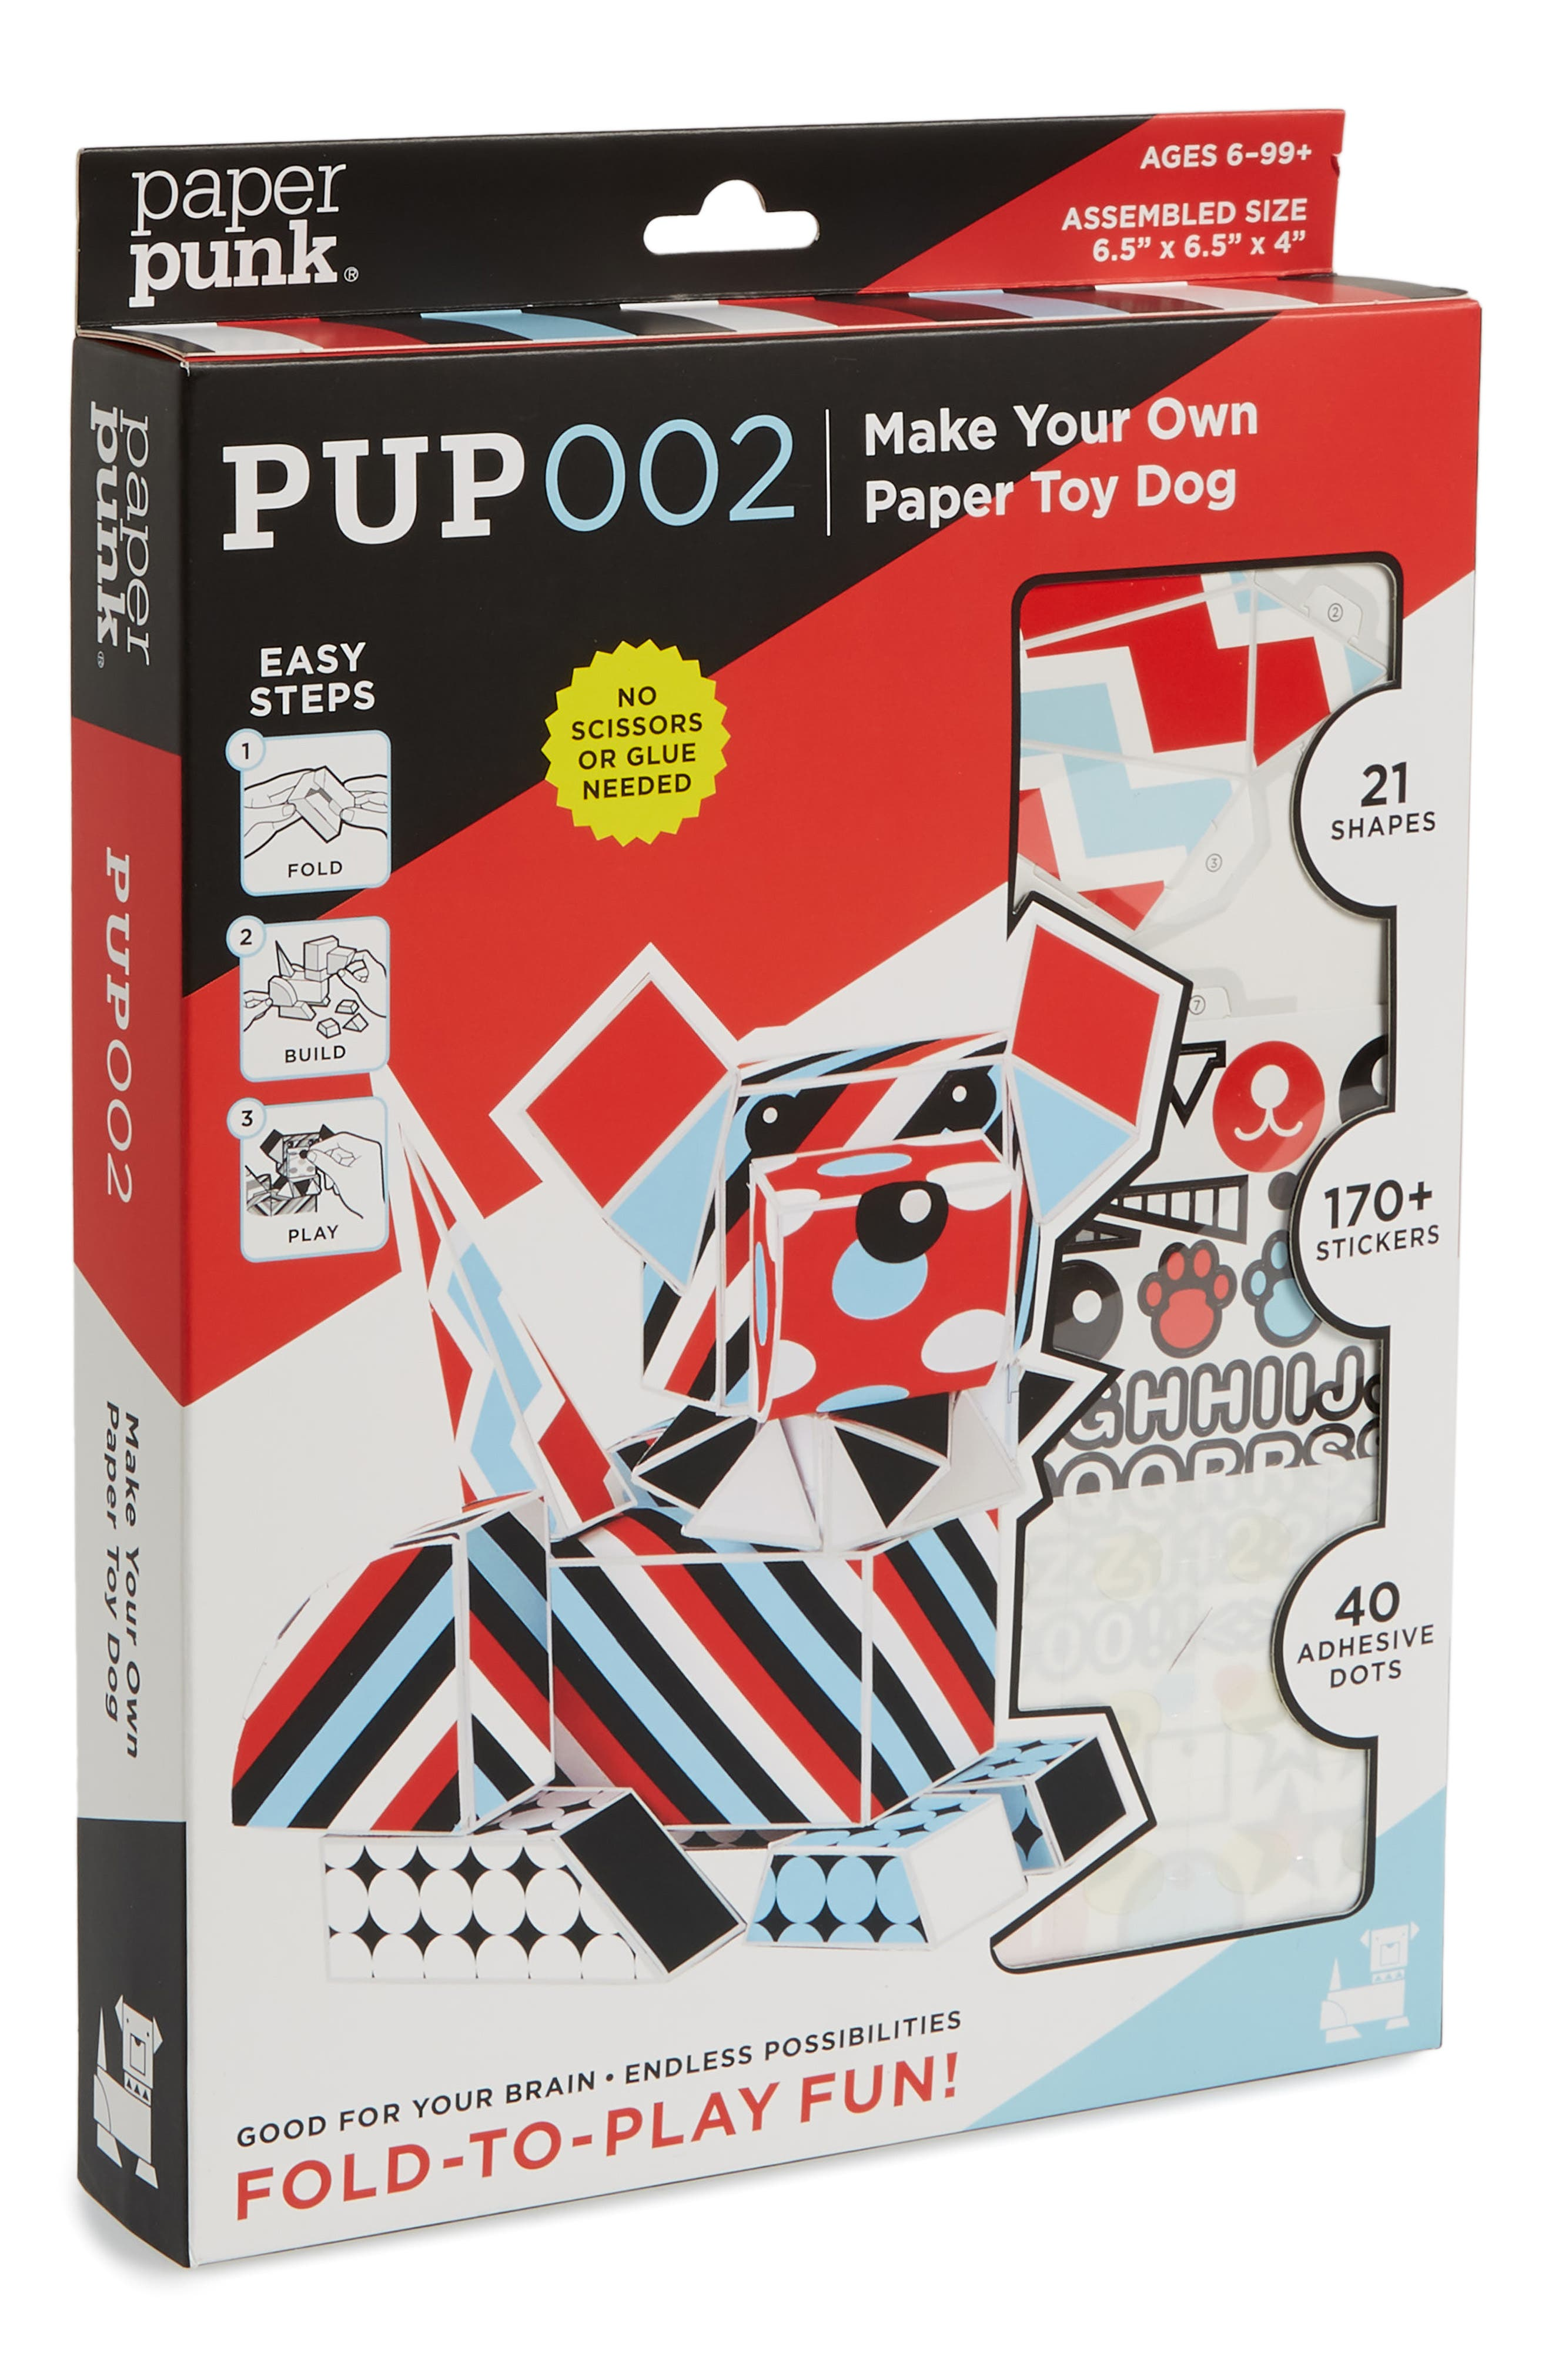 Paper Punk Pup002 Make Your Own Paper Toy Dog Kit